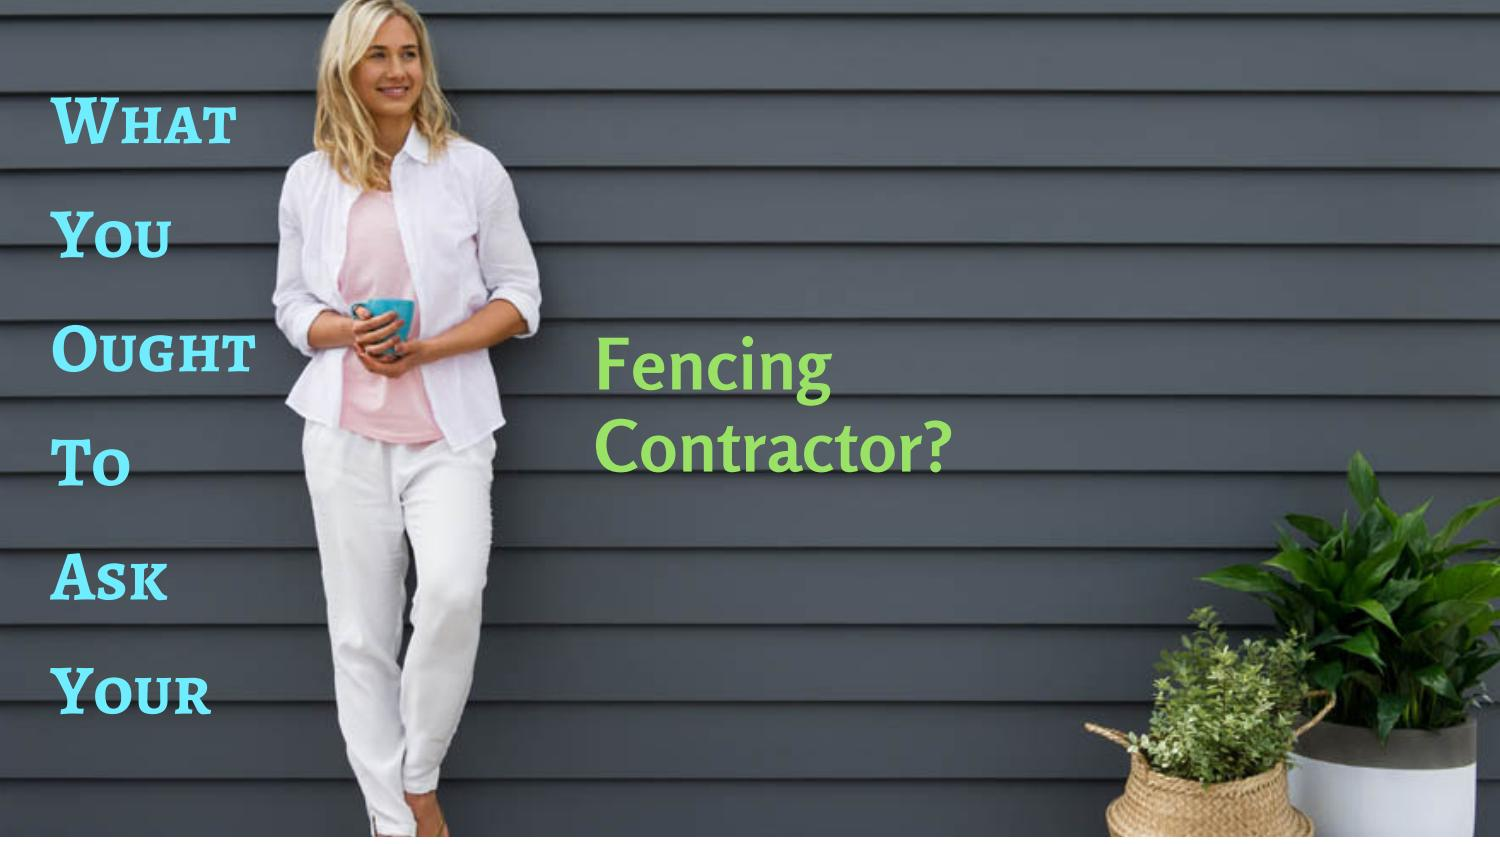 What You Ought To Ask Your Fencing Contractor By All Perth